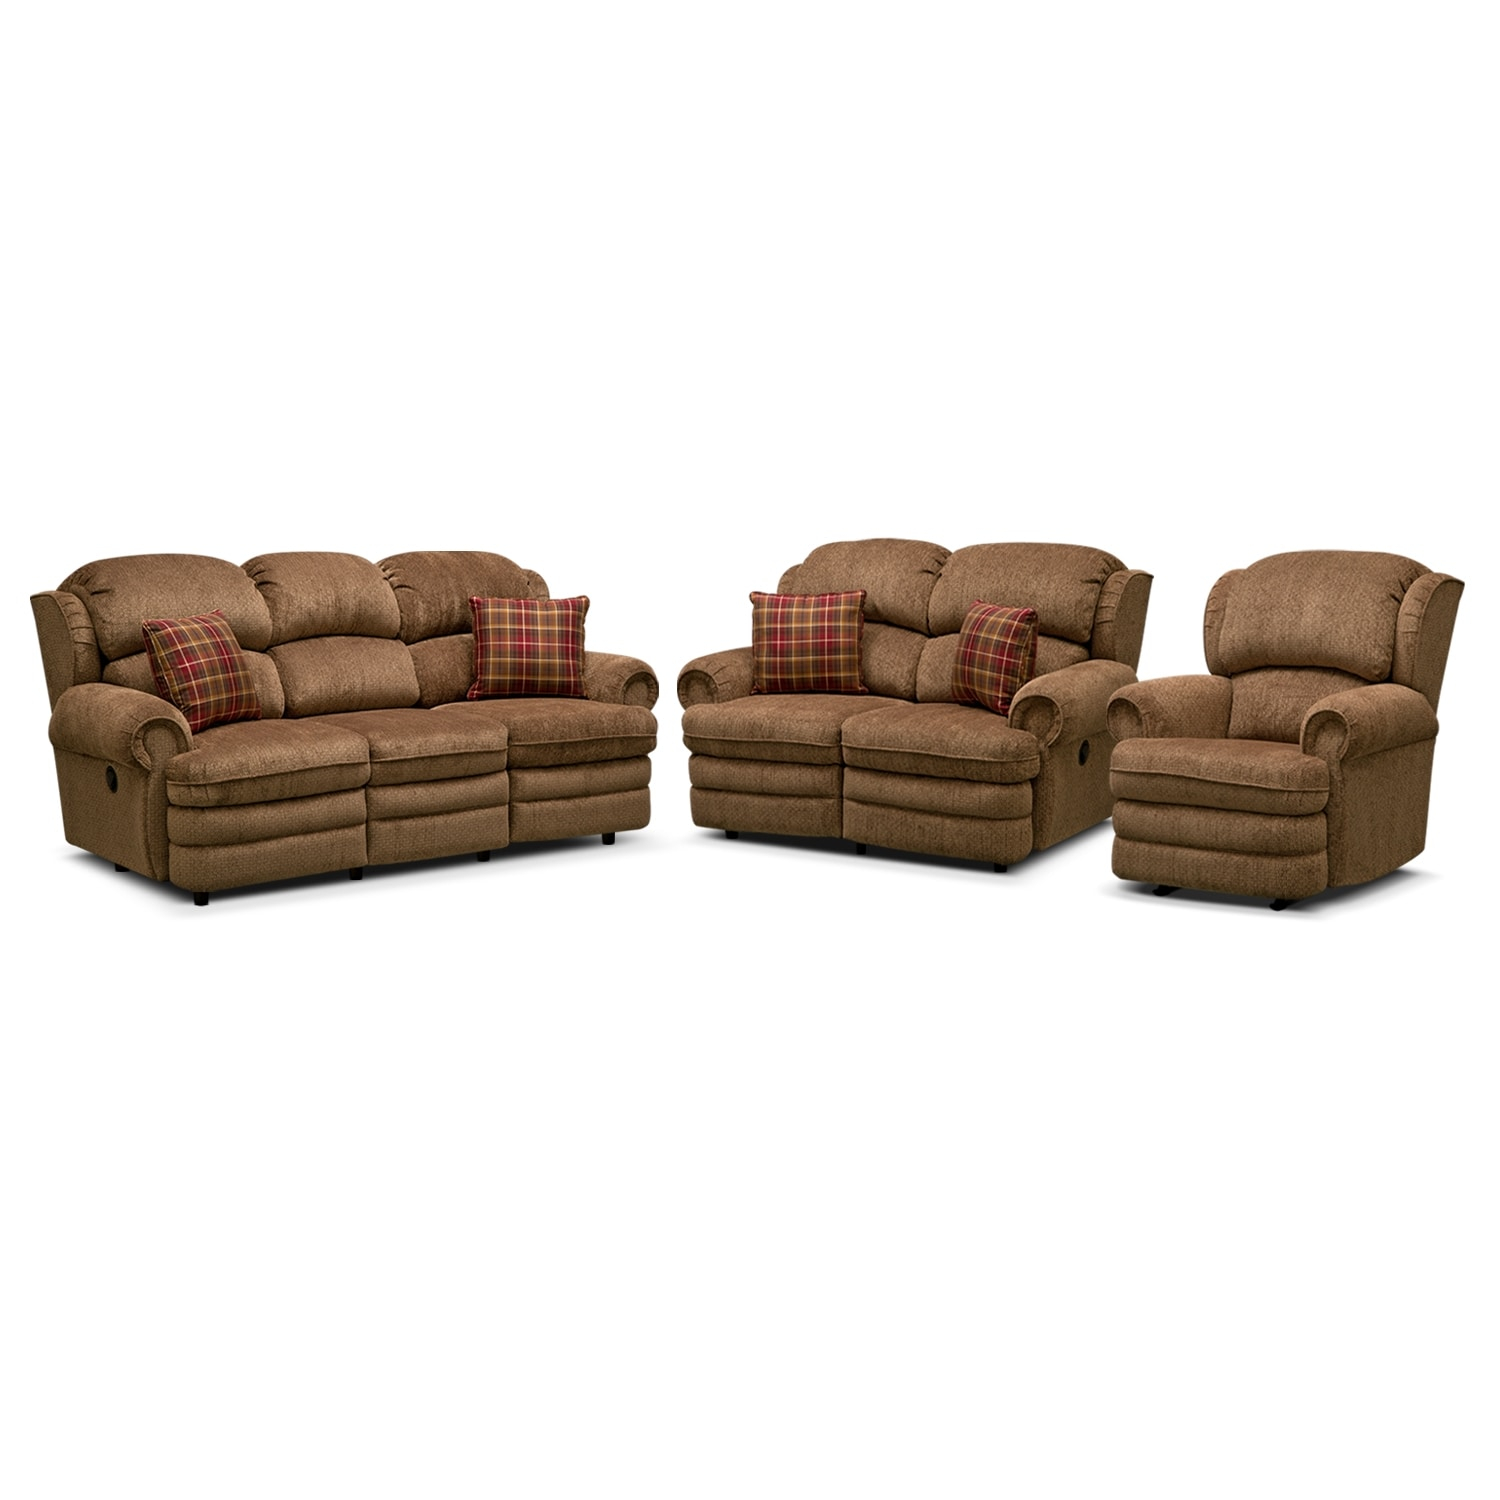 Living Room Furniture - Addison 3 Pc. Reclining Living Room